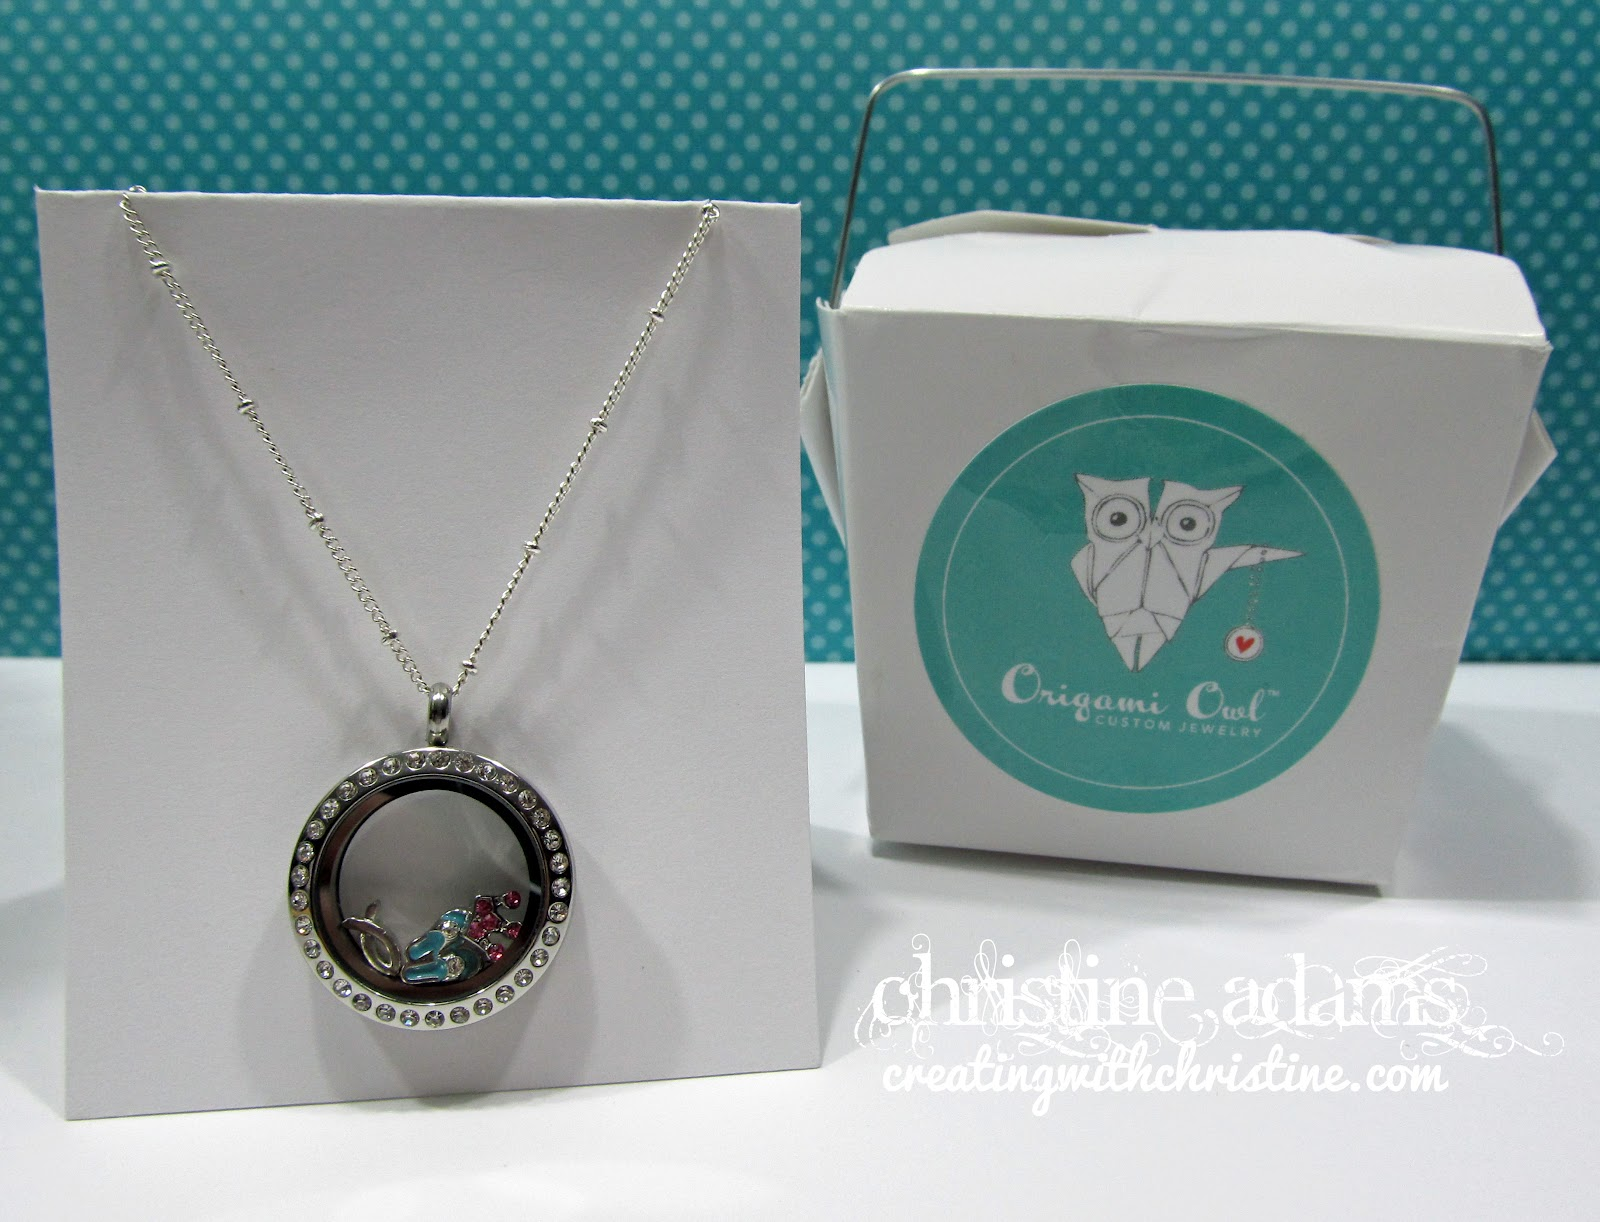 Creating with Christine: Origami Owl Living Lockets - photo#27